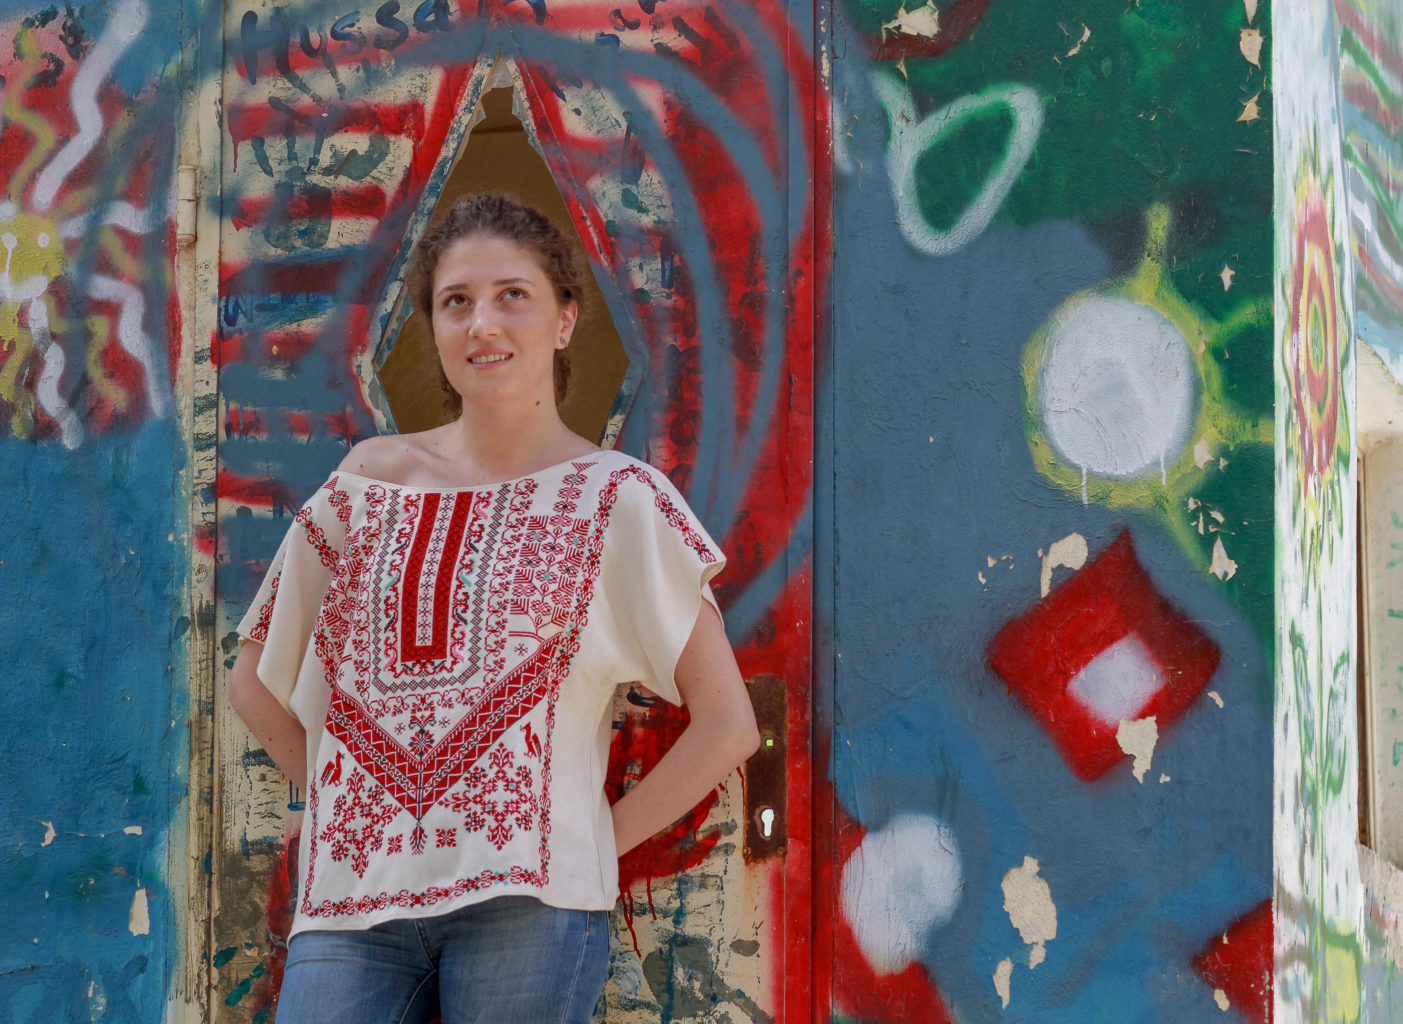 Palestinian heritage lives on through hand-stitched clothing | The Switchers